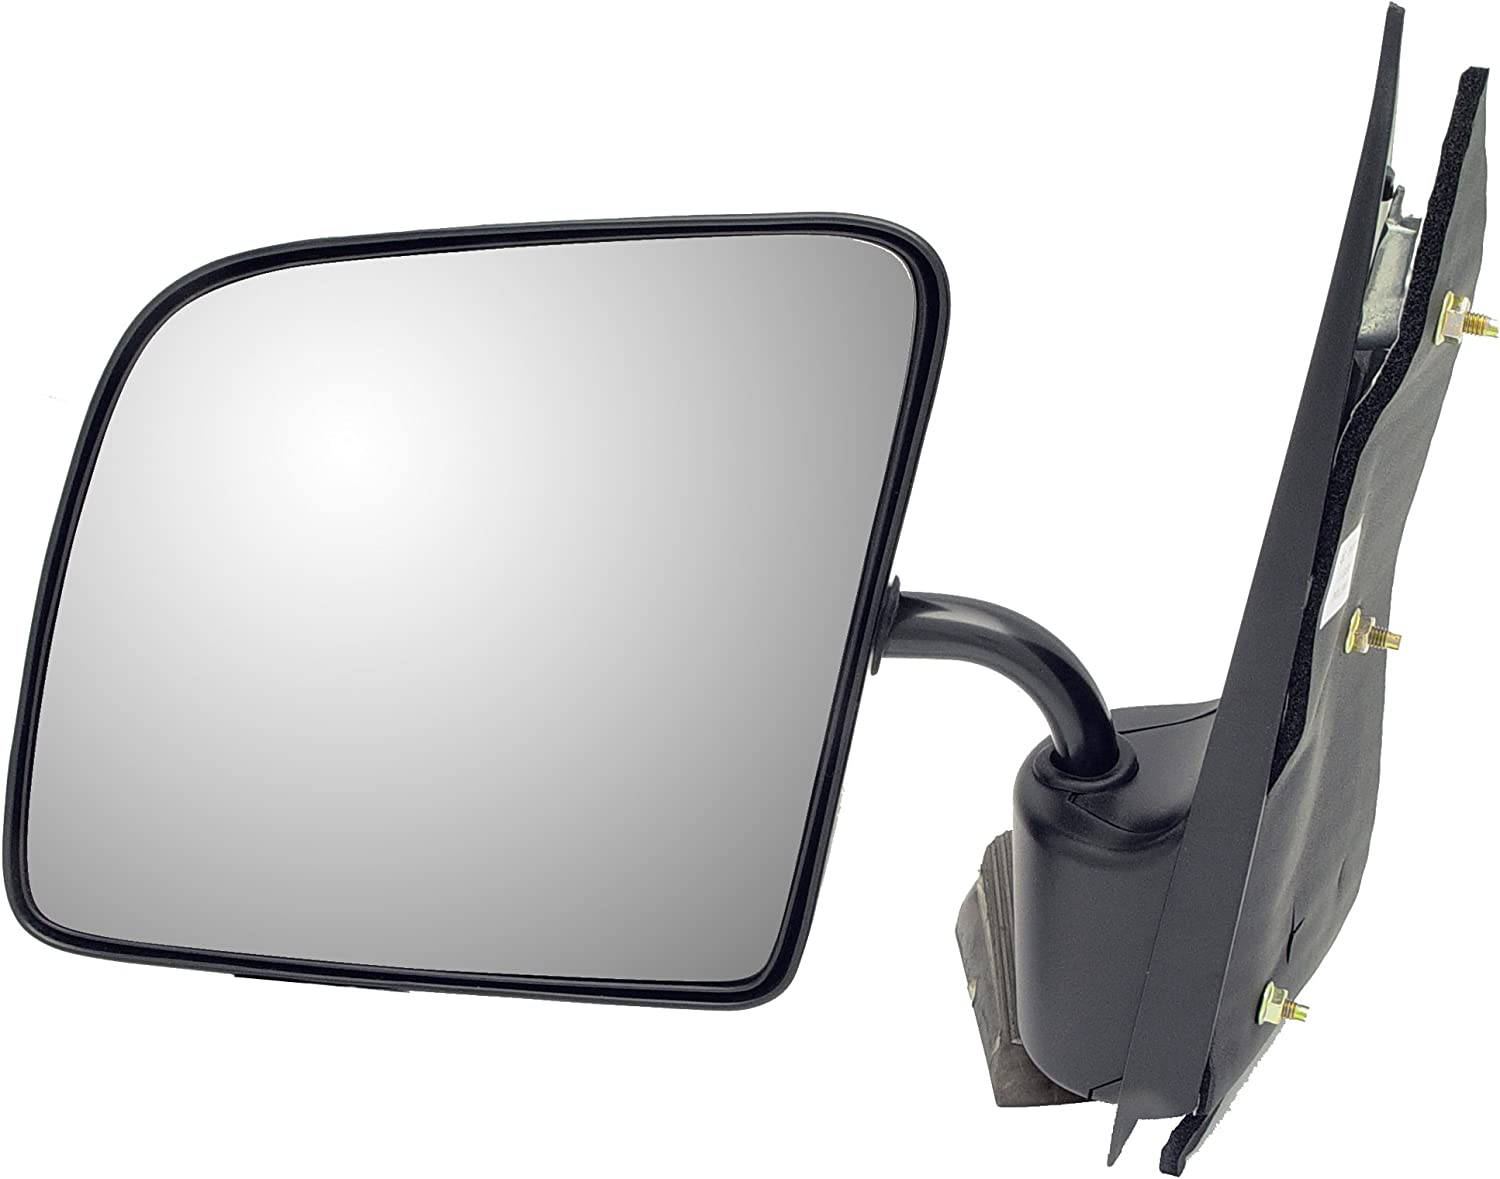 Dorman 955-005 Ford Manual Replacement Passenger Side Mirror